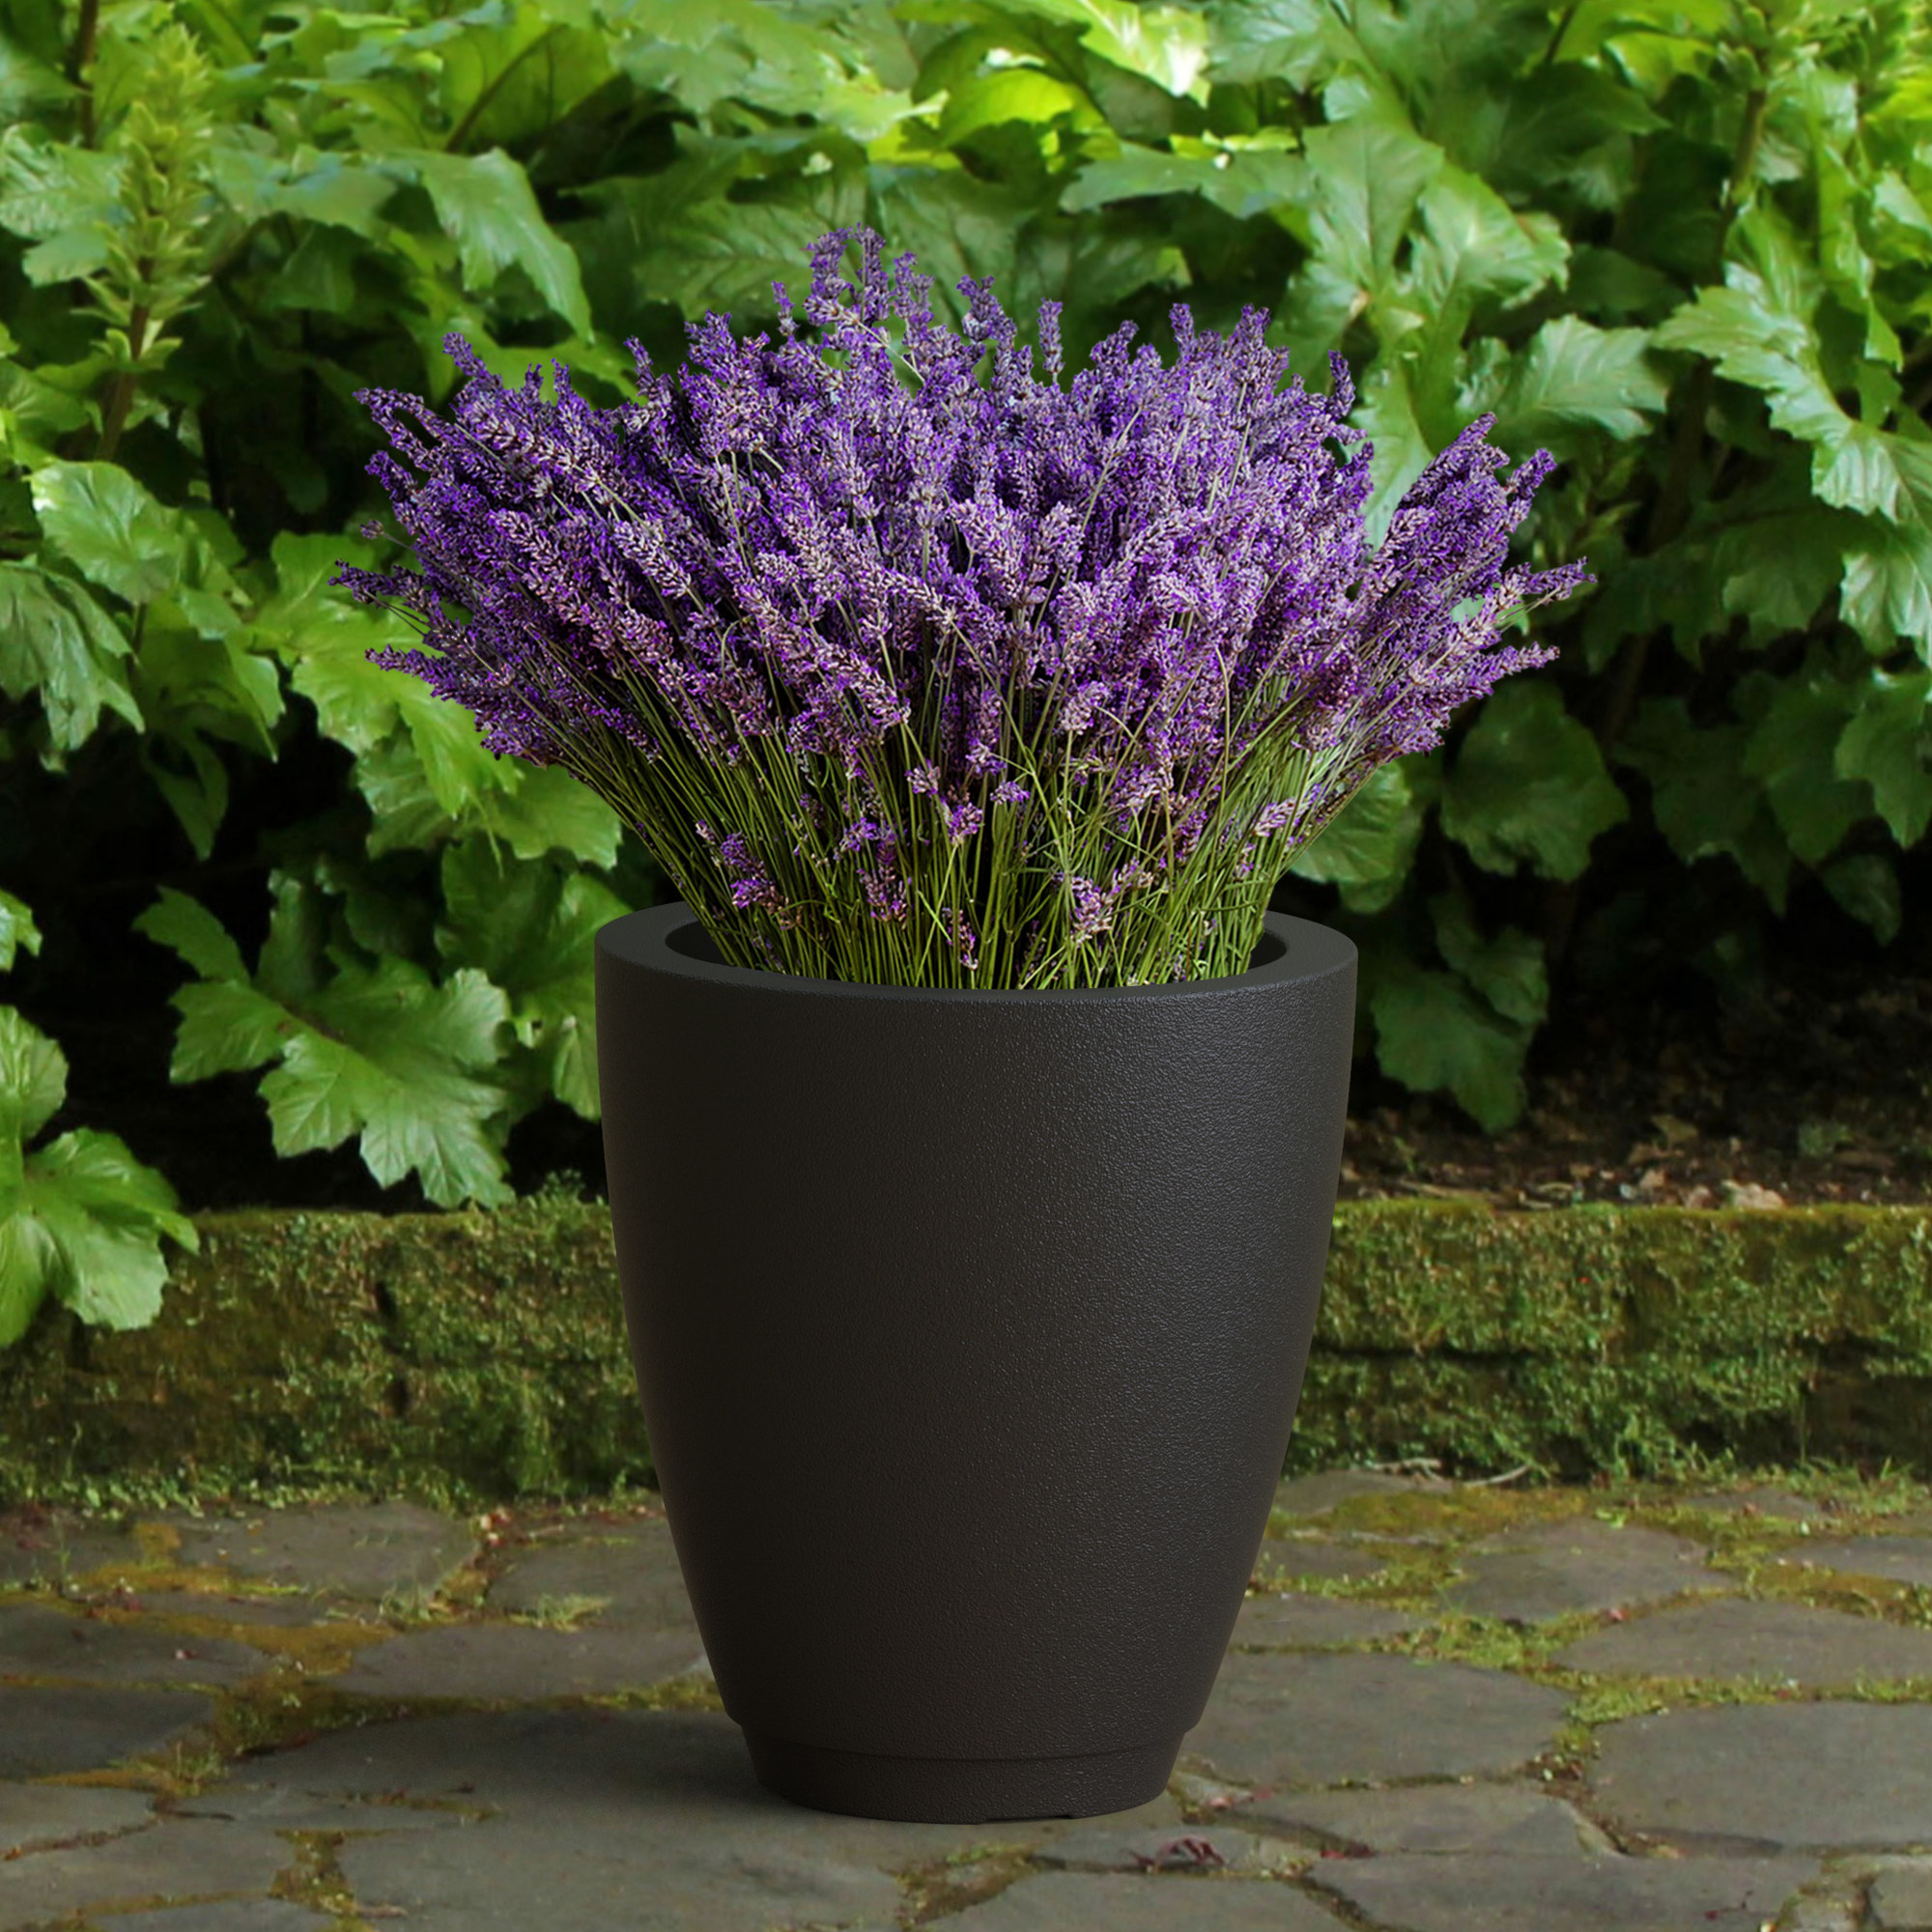 The black planter with a purple plant inside